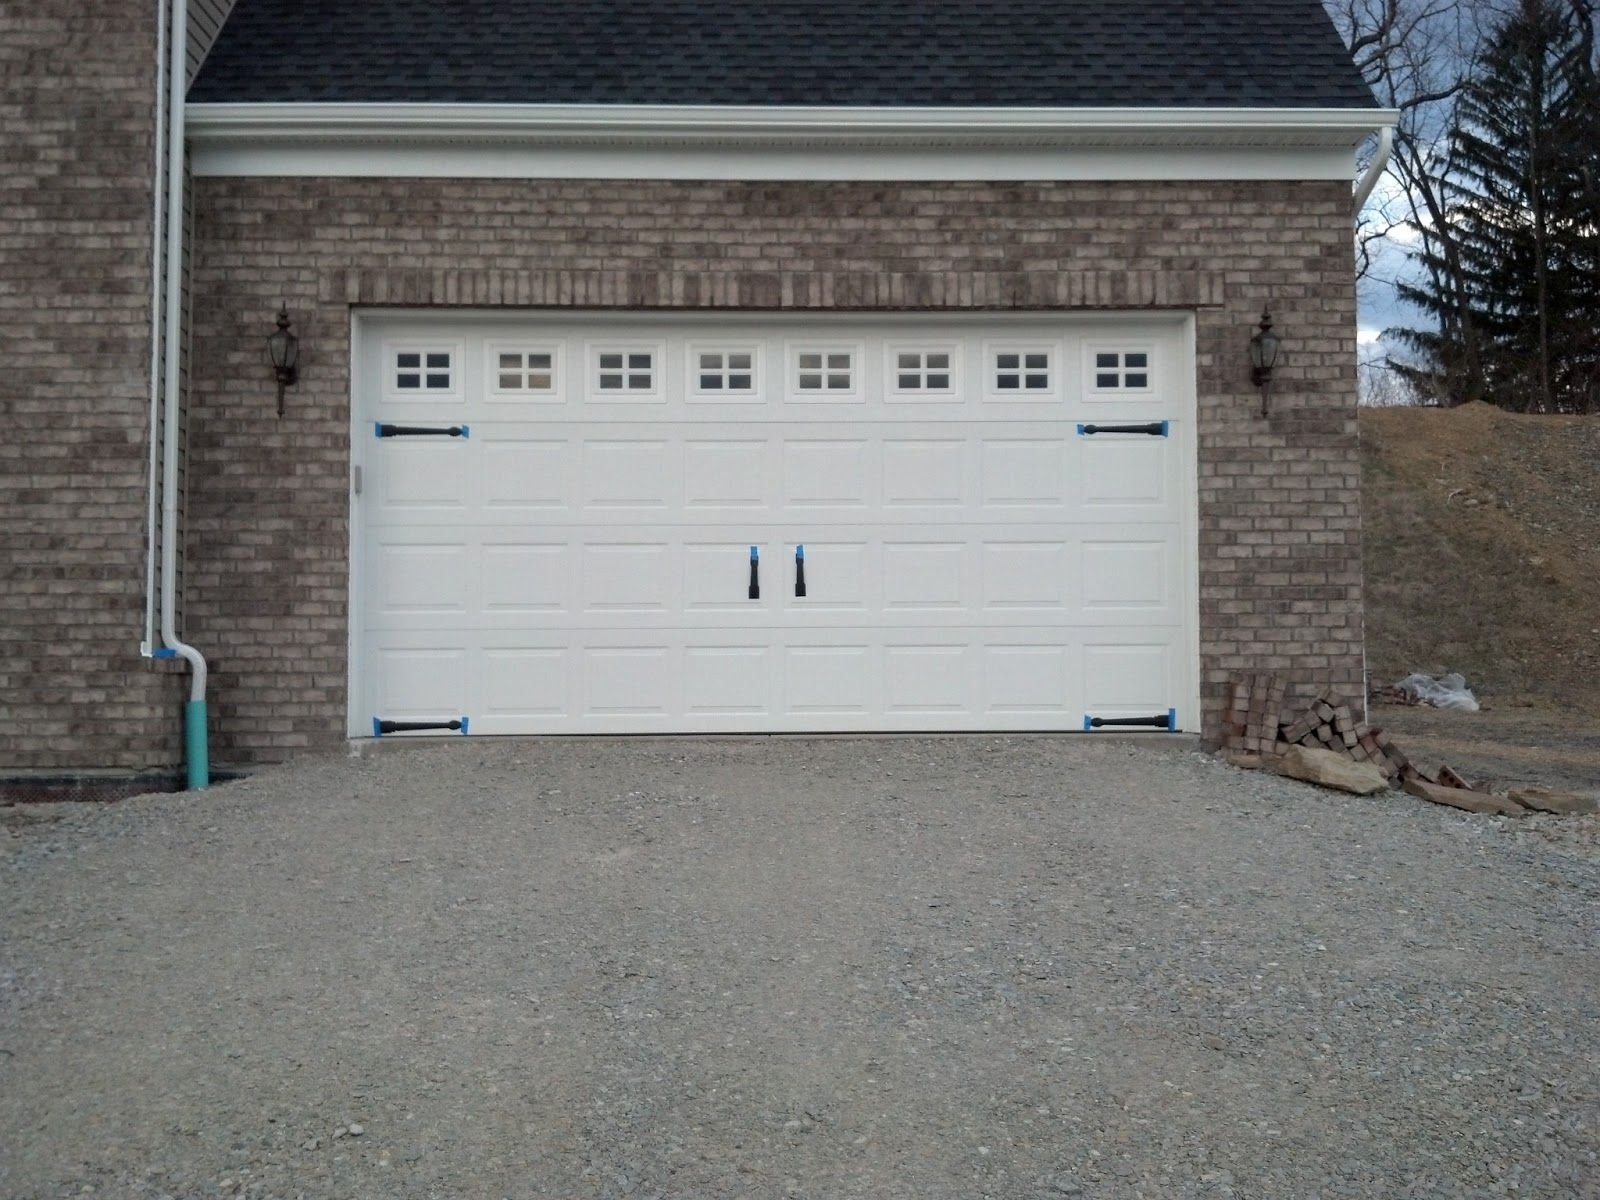 Garage Door Decorative Hardware When you need a new garage door for your home this is the place to get an idea of what you want. & Image result for metal garage door with decorative hardware ... pezcame.com